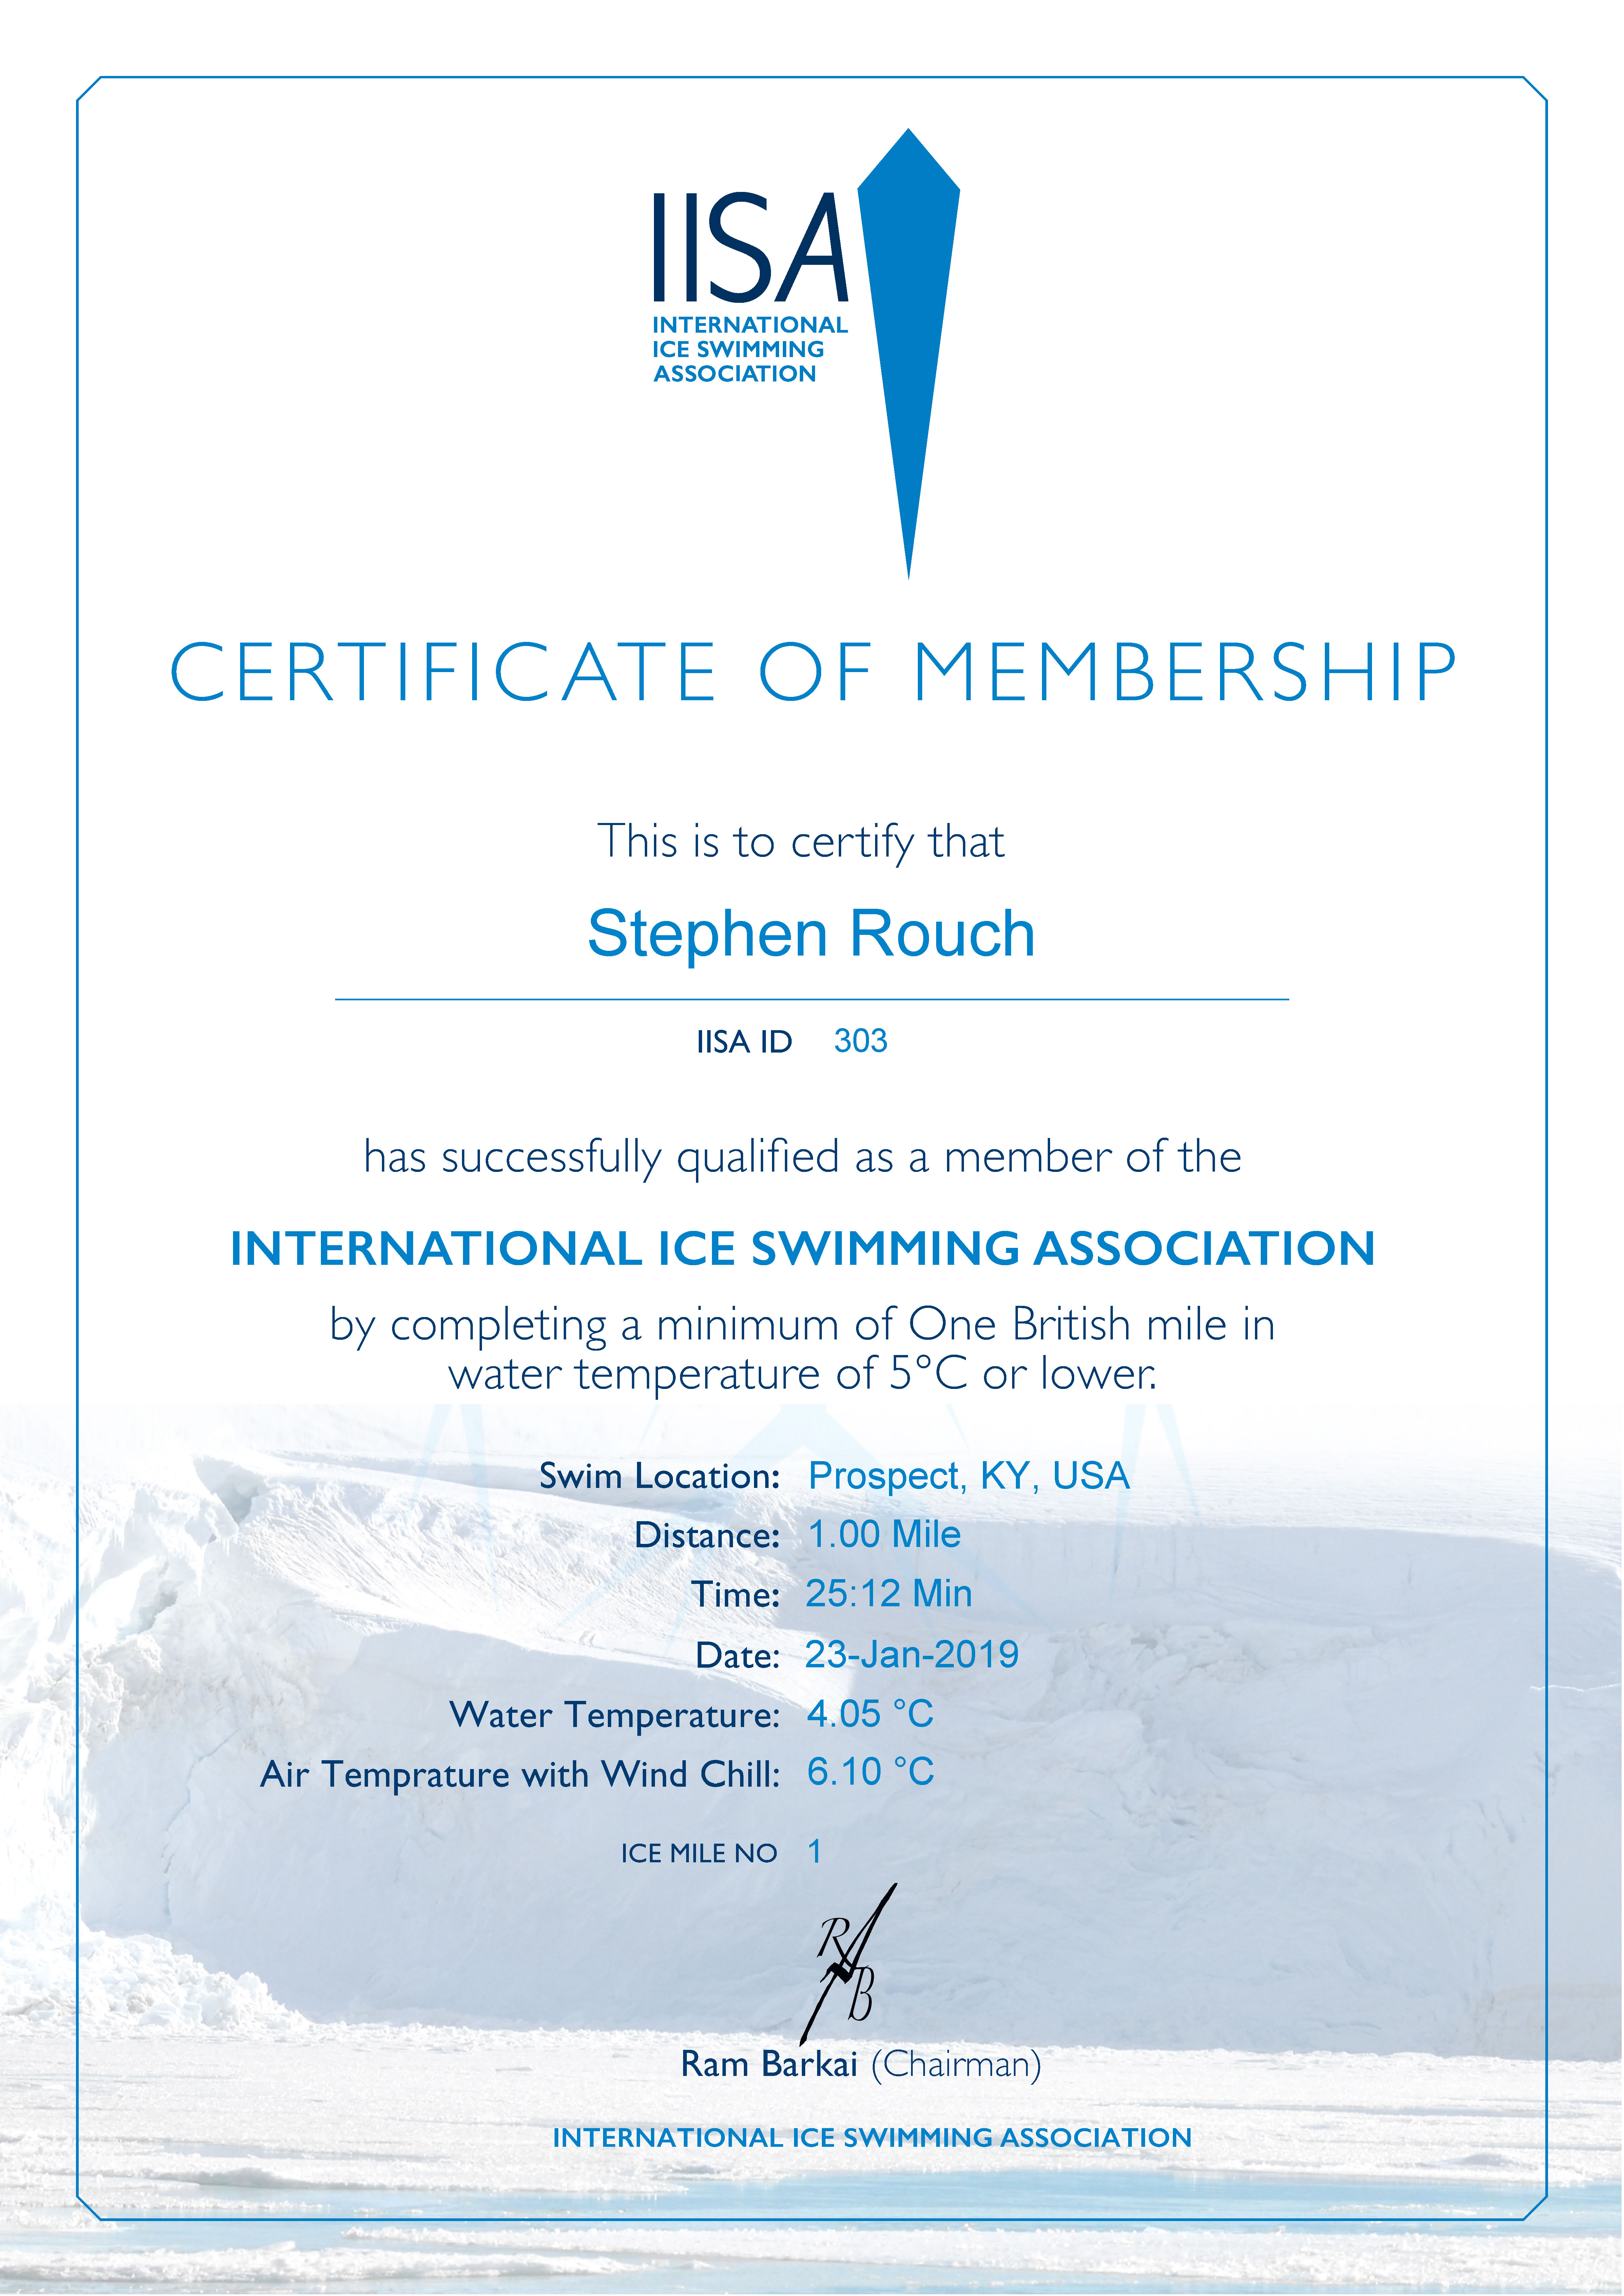 Ice Mile Certificate - Stephen Rouch